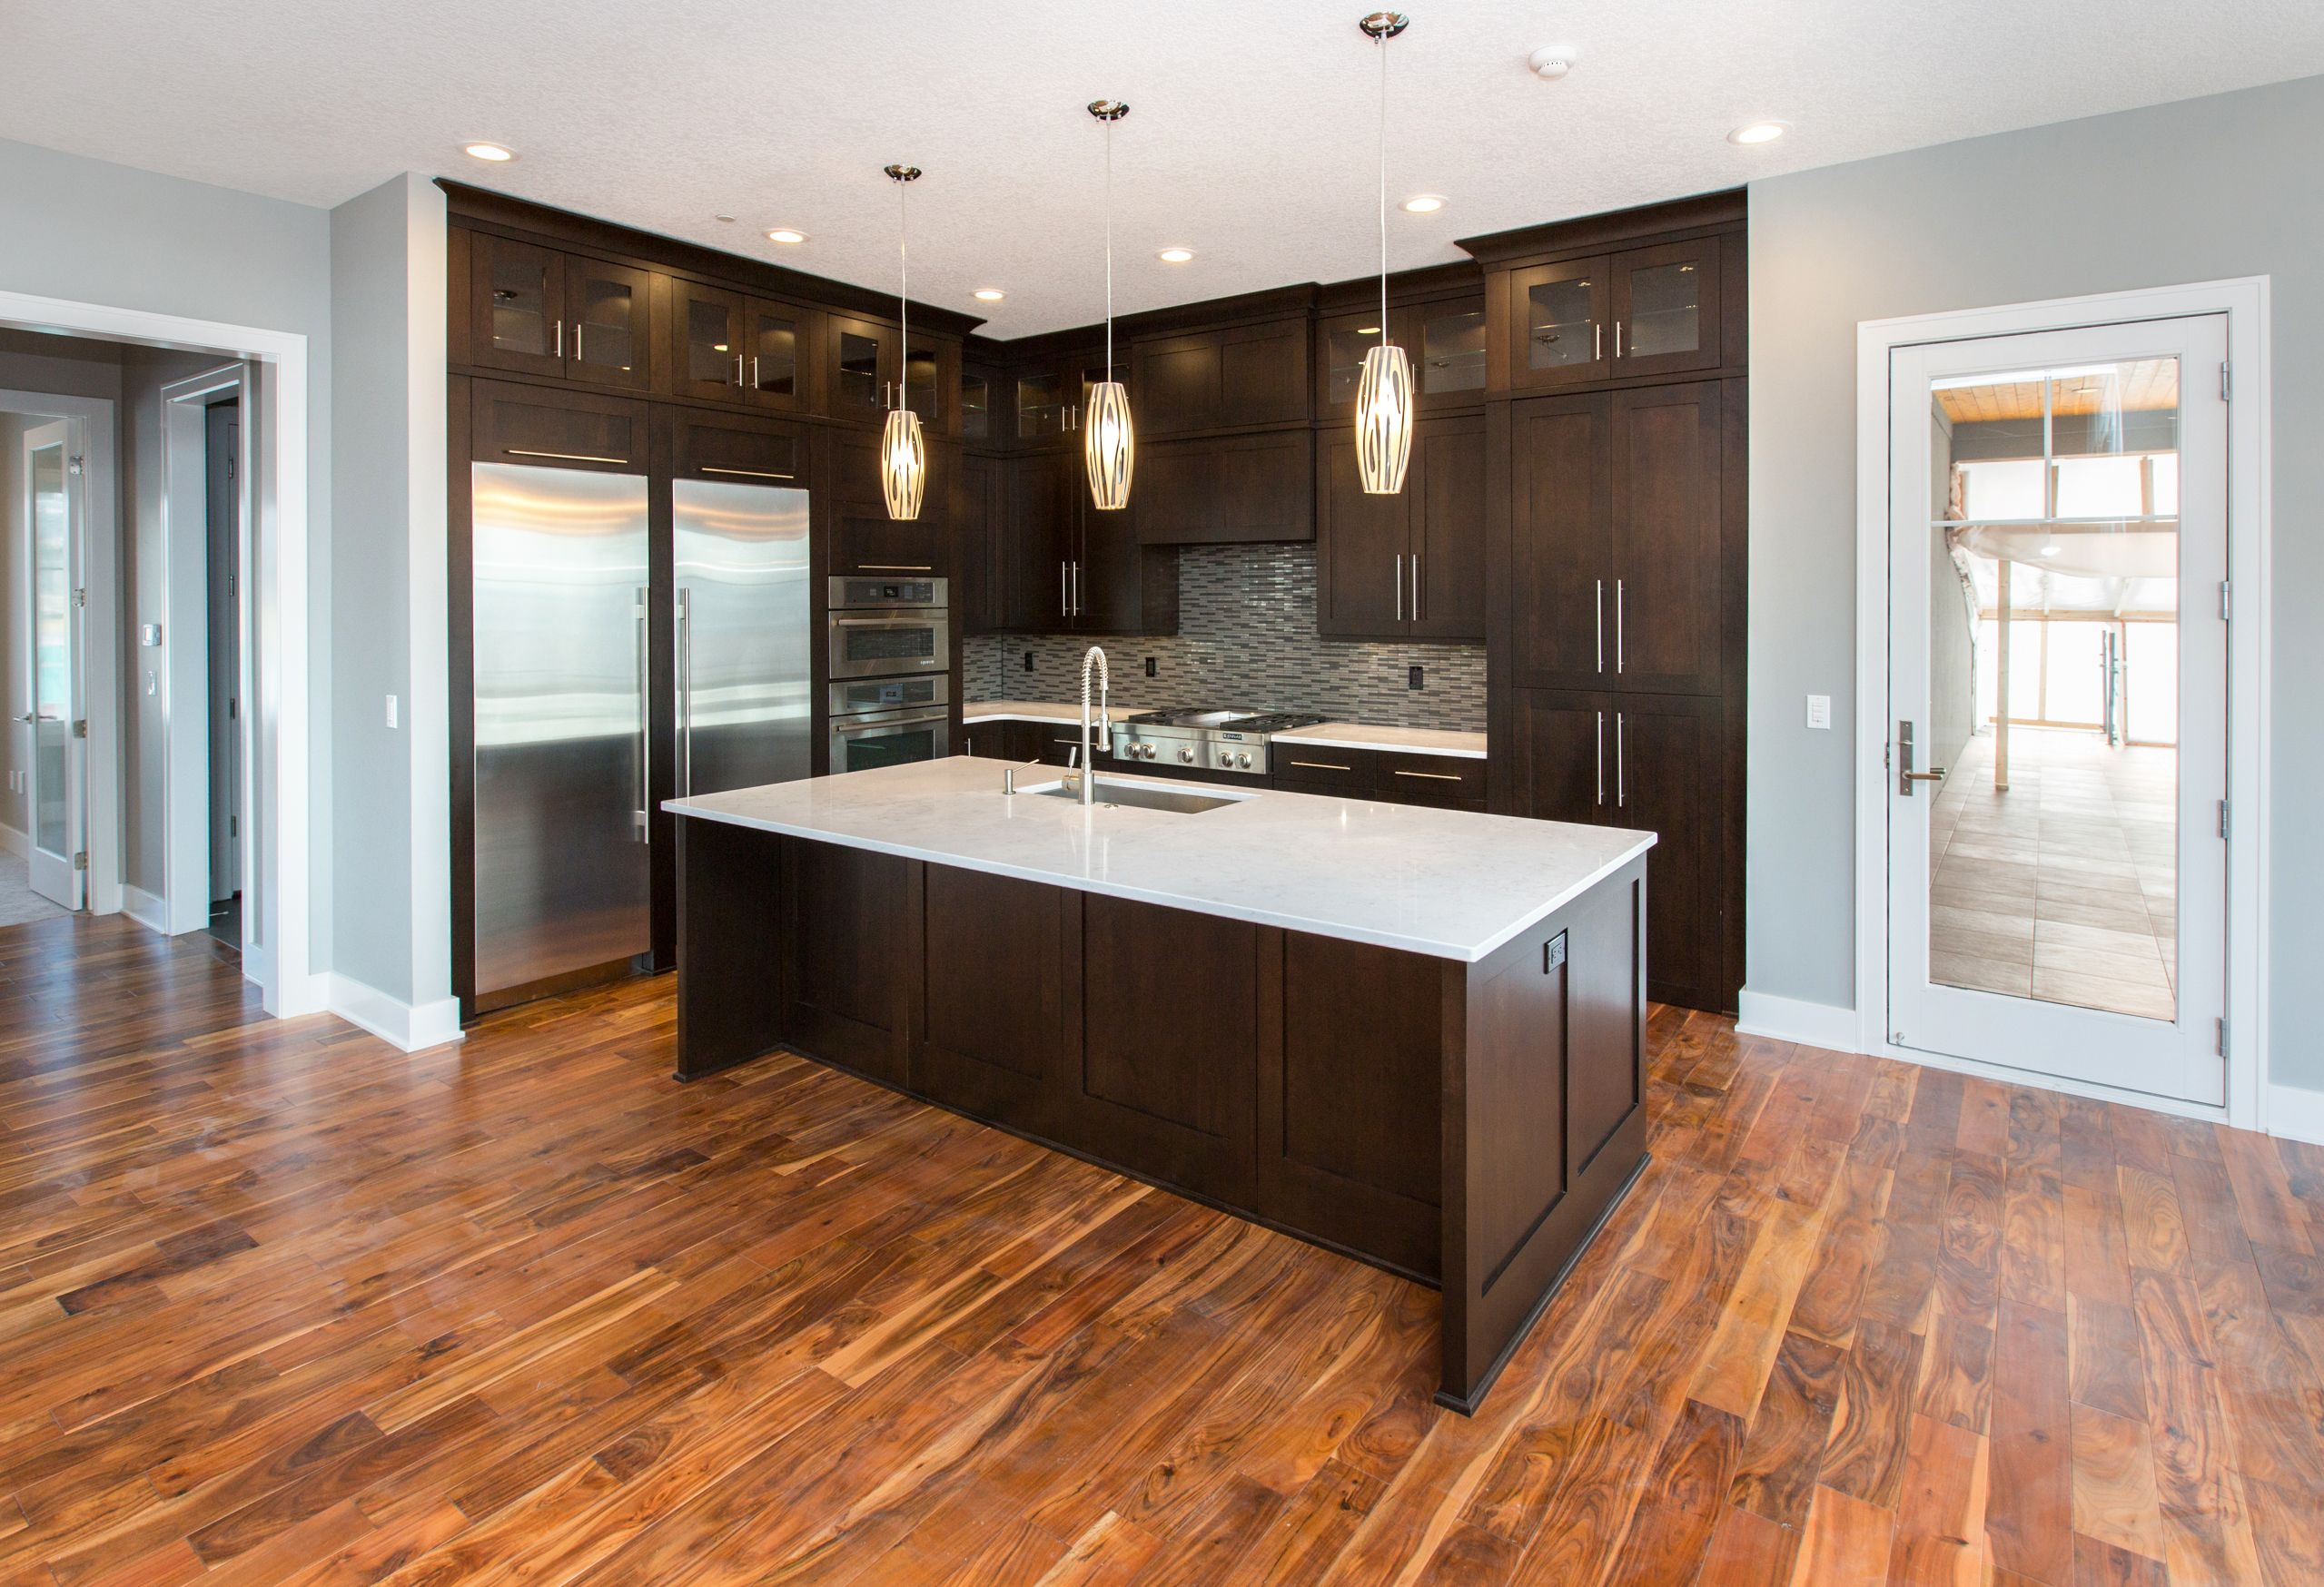 Kitchen Cabinets With Black Trim Love This Modern Look Dark Kitchen Cabinets Light